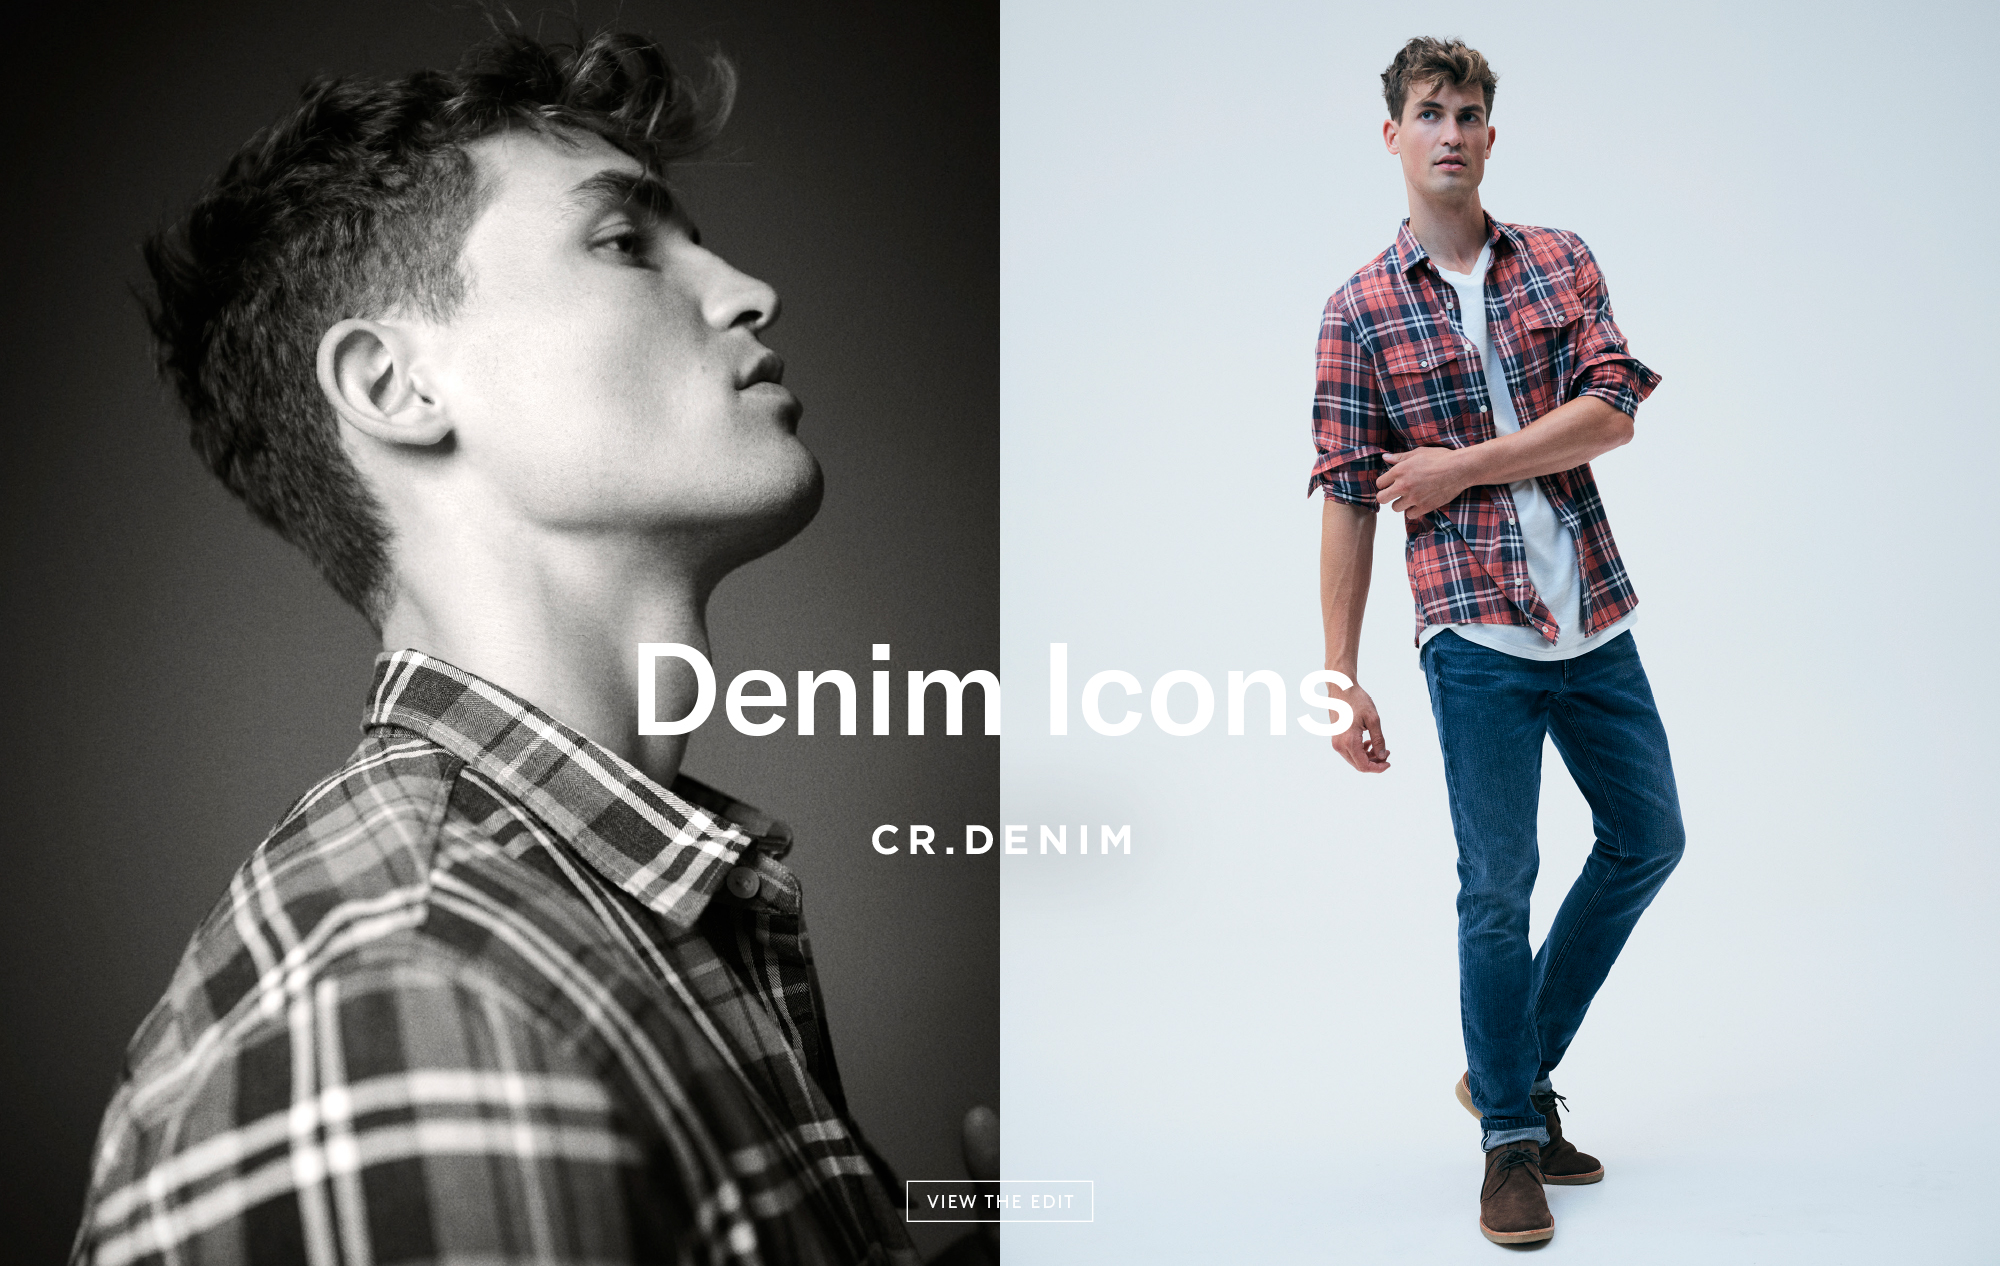 Denim Icons - CR.Denim - View The Edit